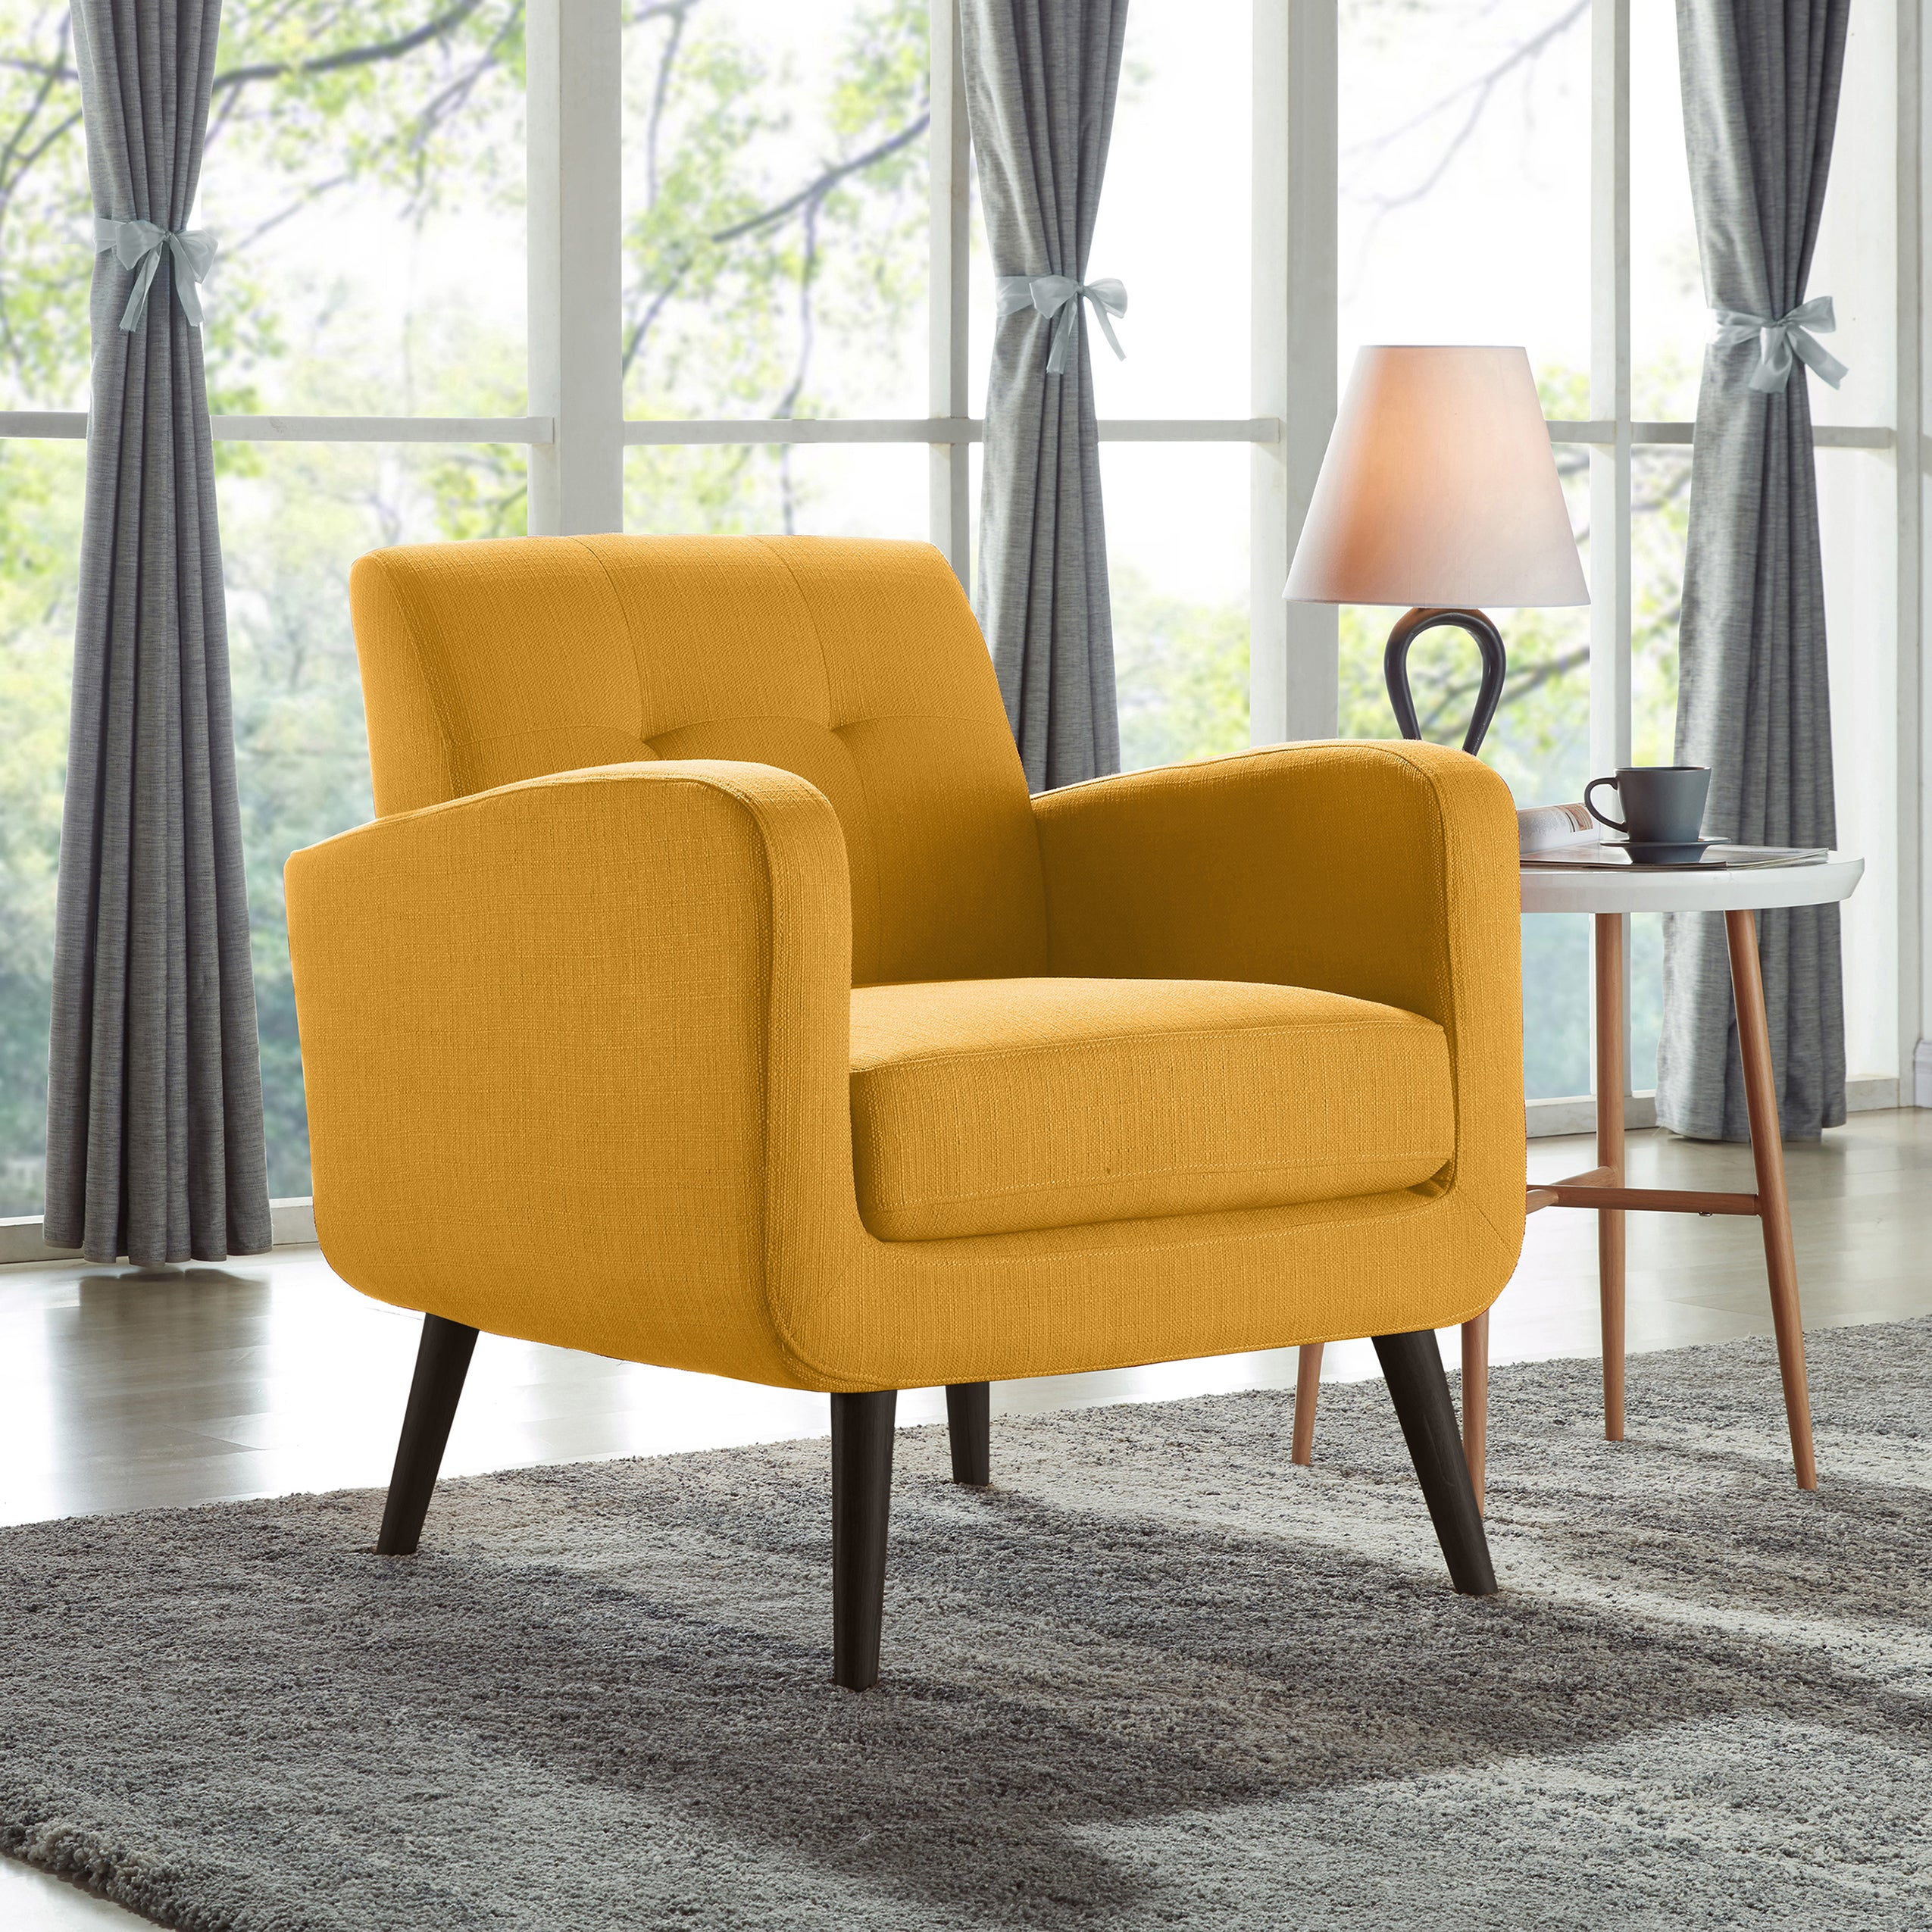 Strange Accent Chairs Shop Online At Overstock Caraccident5 Cool Chair Designs And Ideas Caraccident5Info